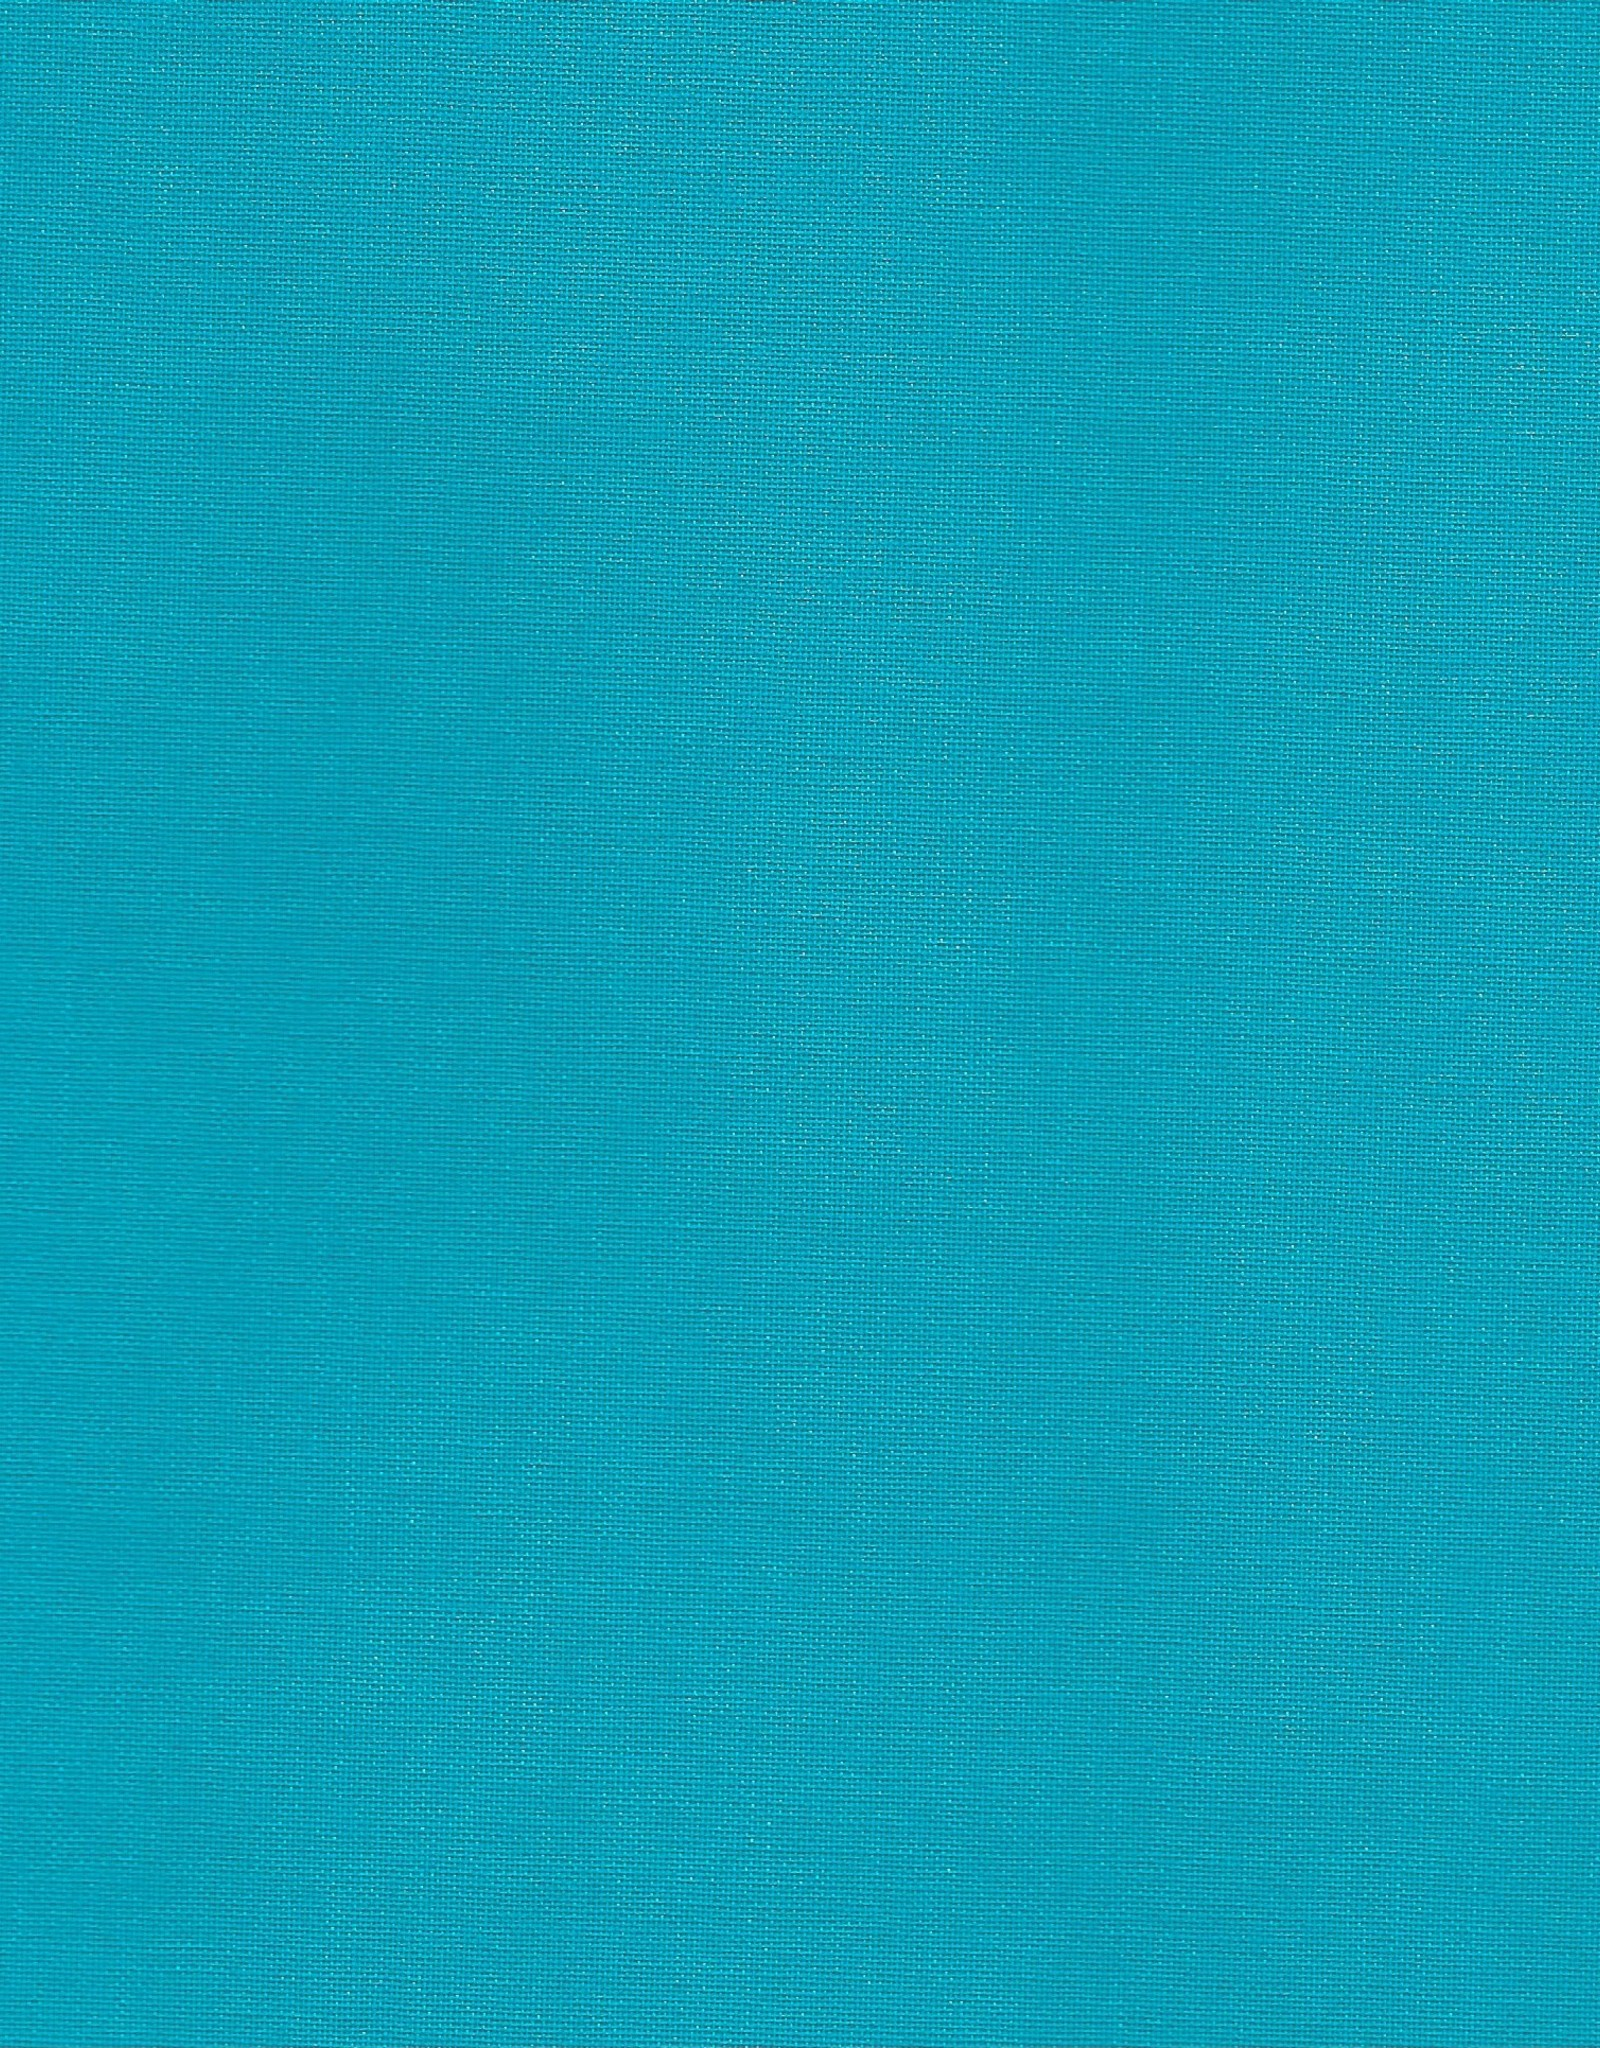 """Book Cloth Turquoise, 17"""" x 19"""", 1 Sheet, Acid-Free, 100% Rayon, Paper Backed"""